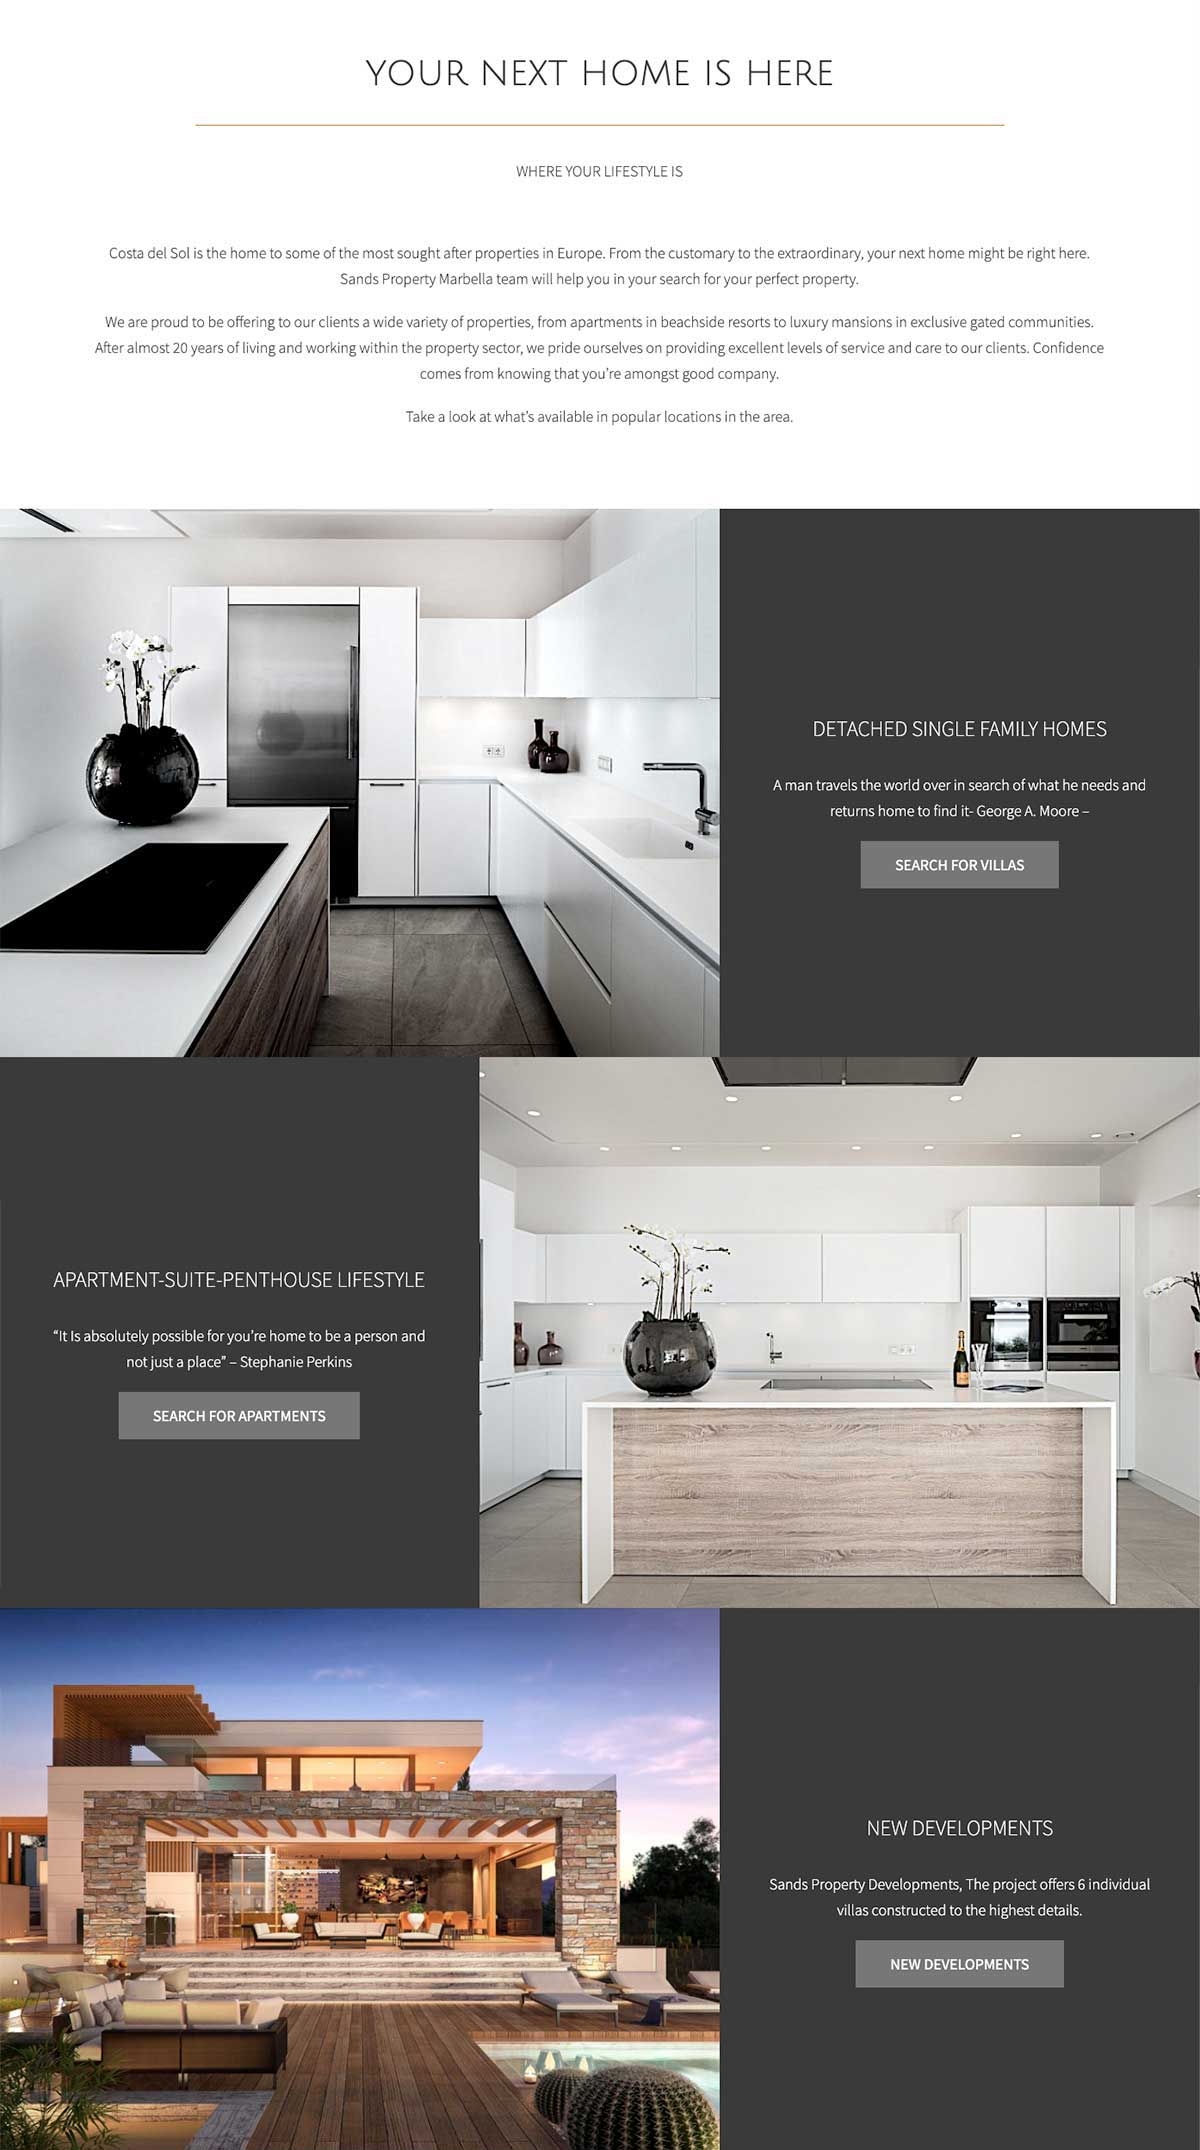 WordPress website design marbella real estate property website marbella